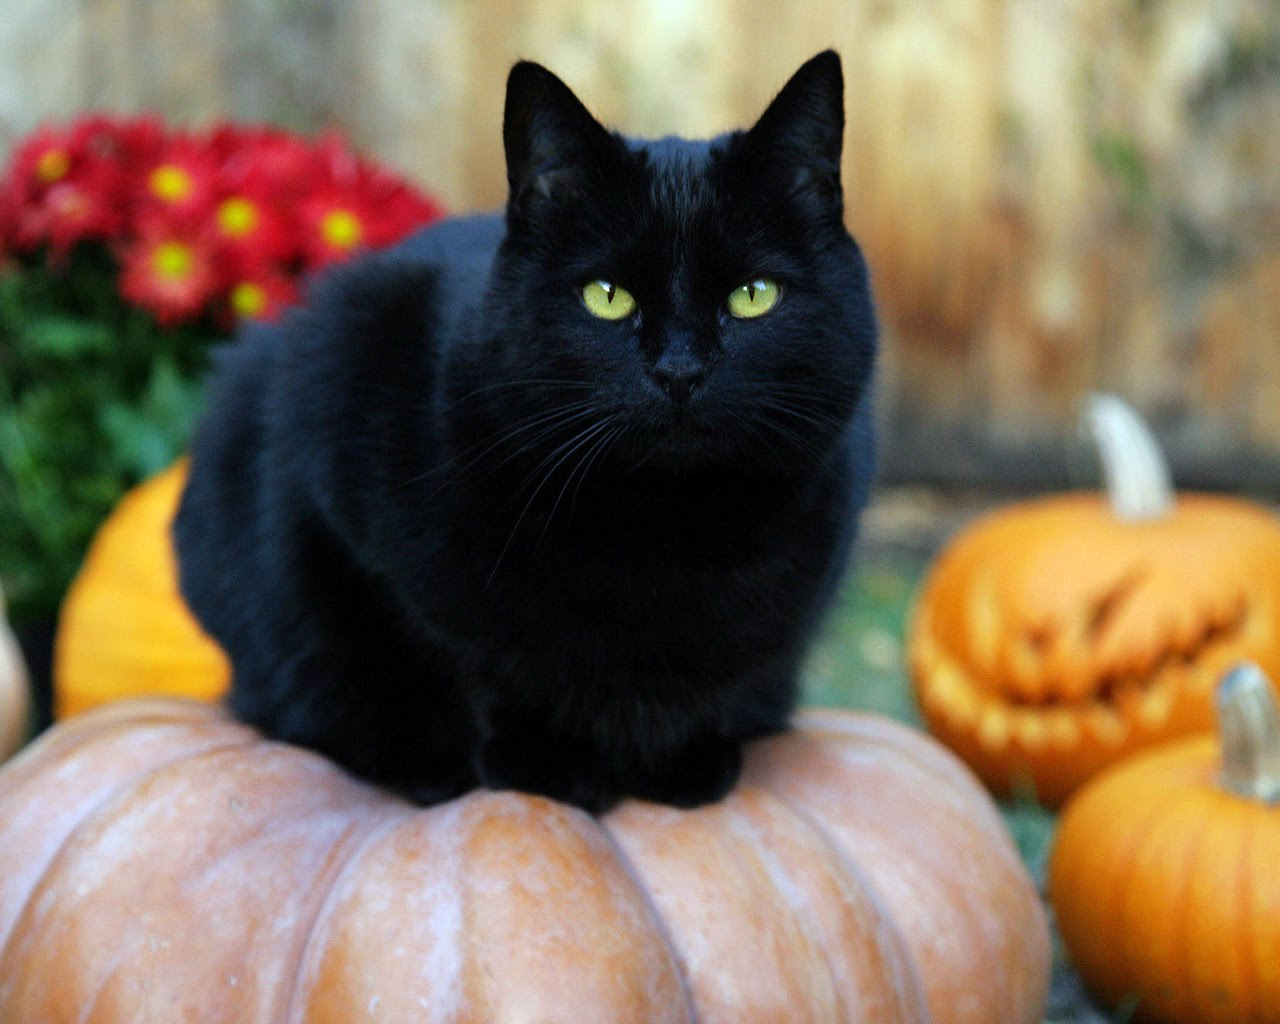 THE PAWSOMENESS OF BLACK CATS